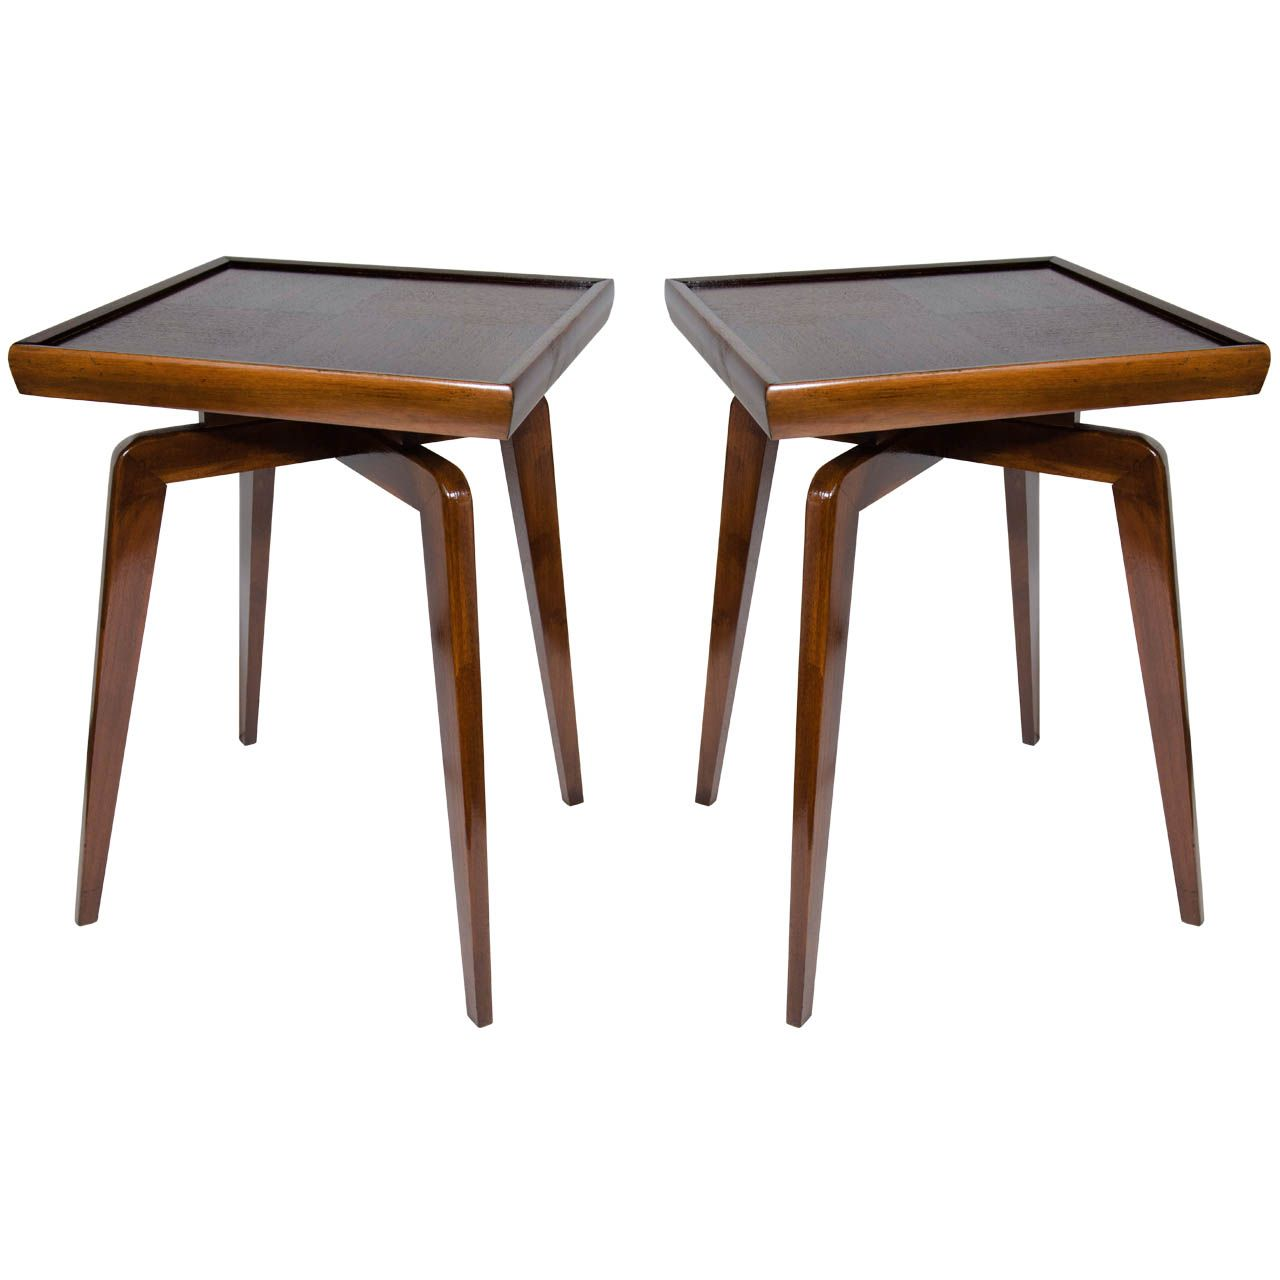 Pair Of Mid Century Modern Walnut Wood Side Tables With Spider Leg Design |  From A